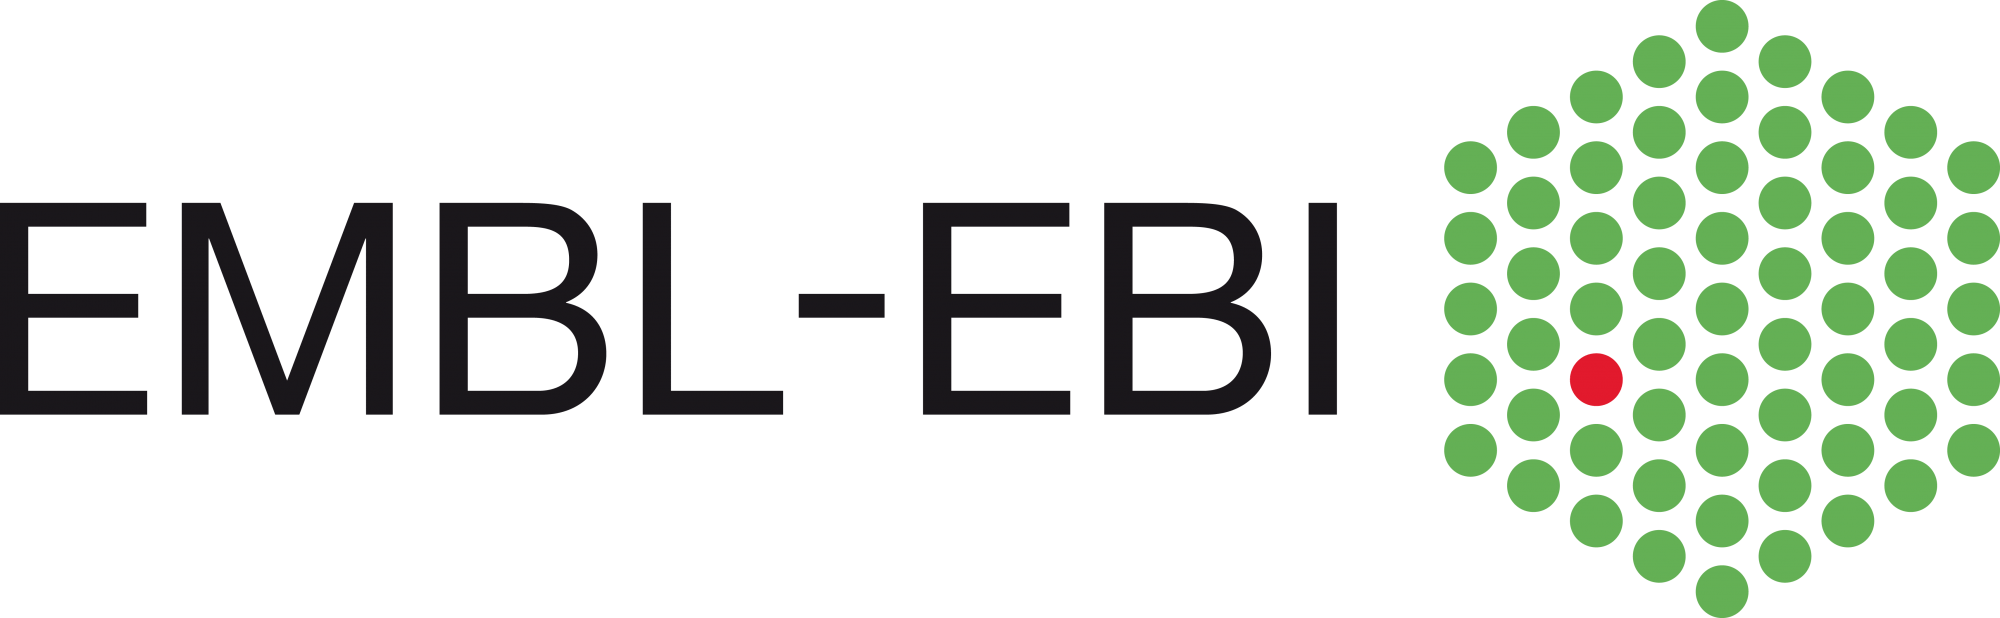 EMBL-EBI logo